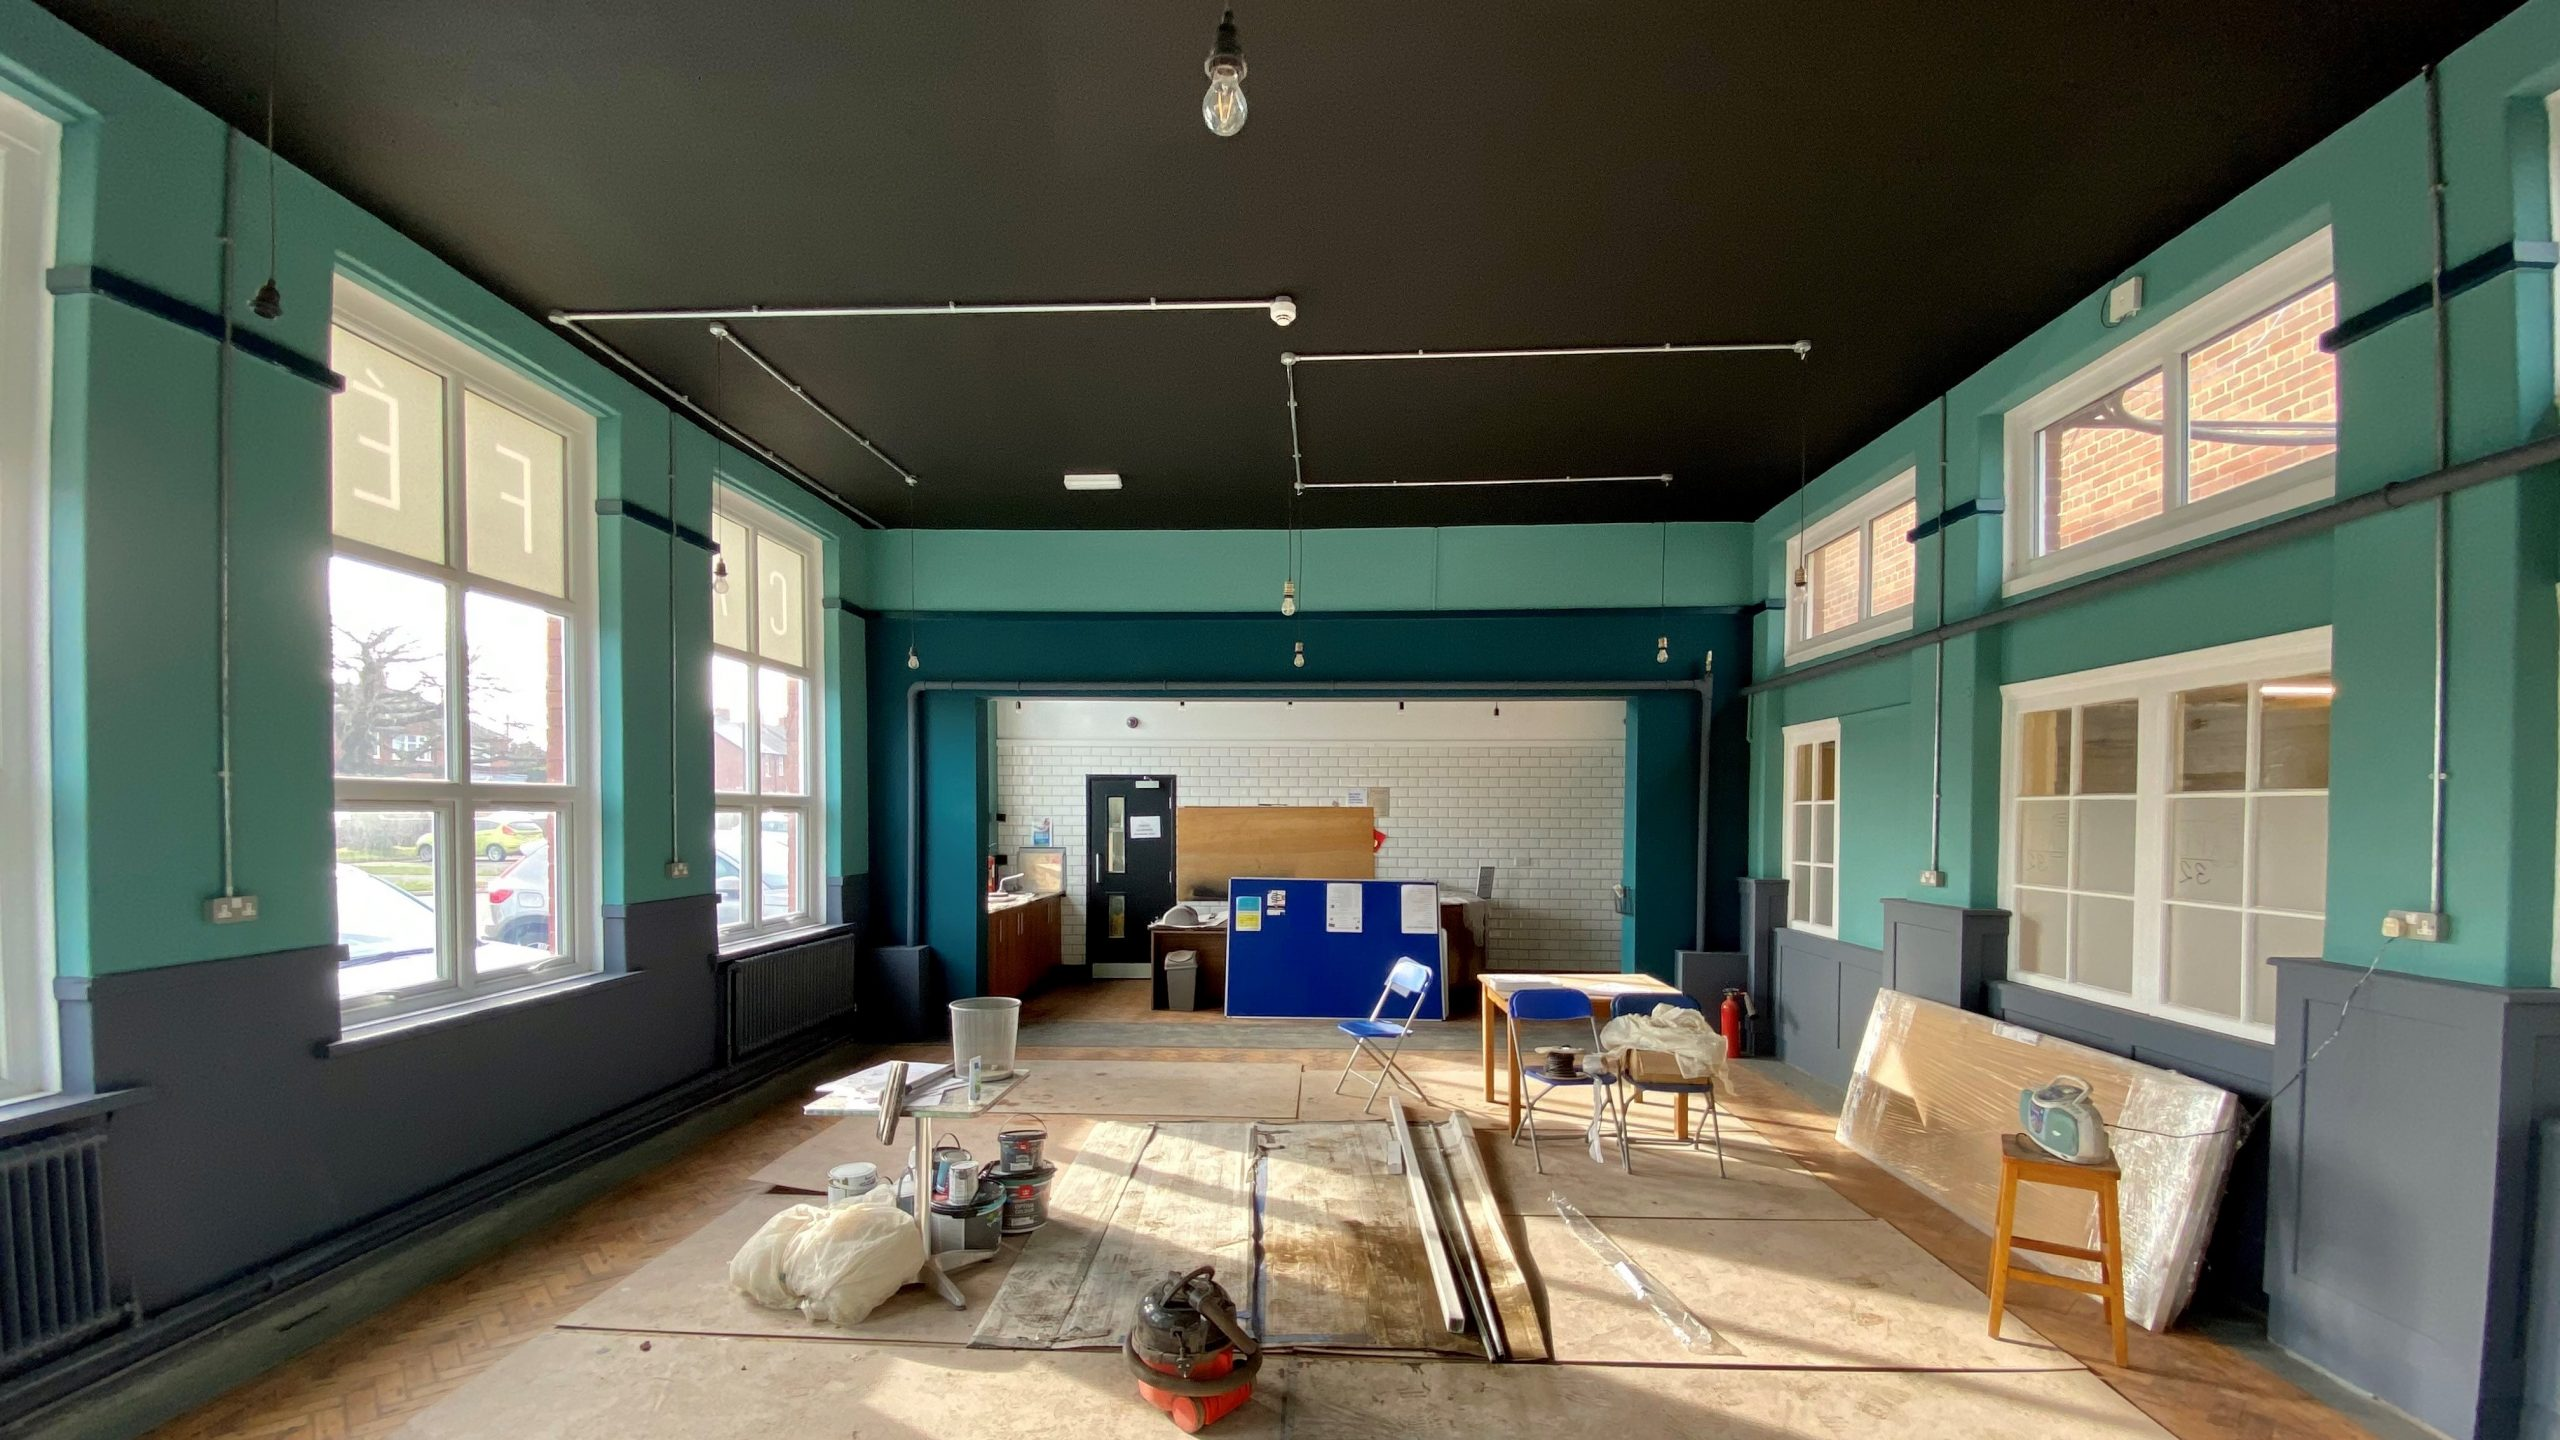 Cafe 32 is having a makeover